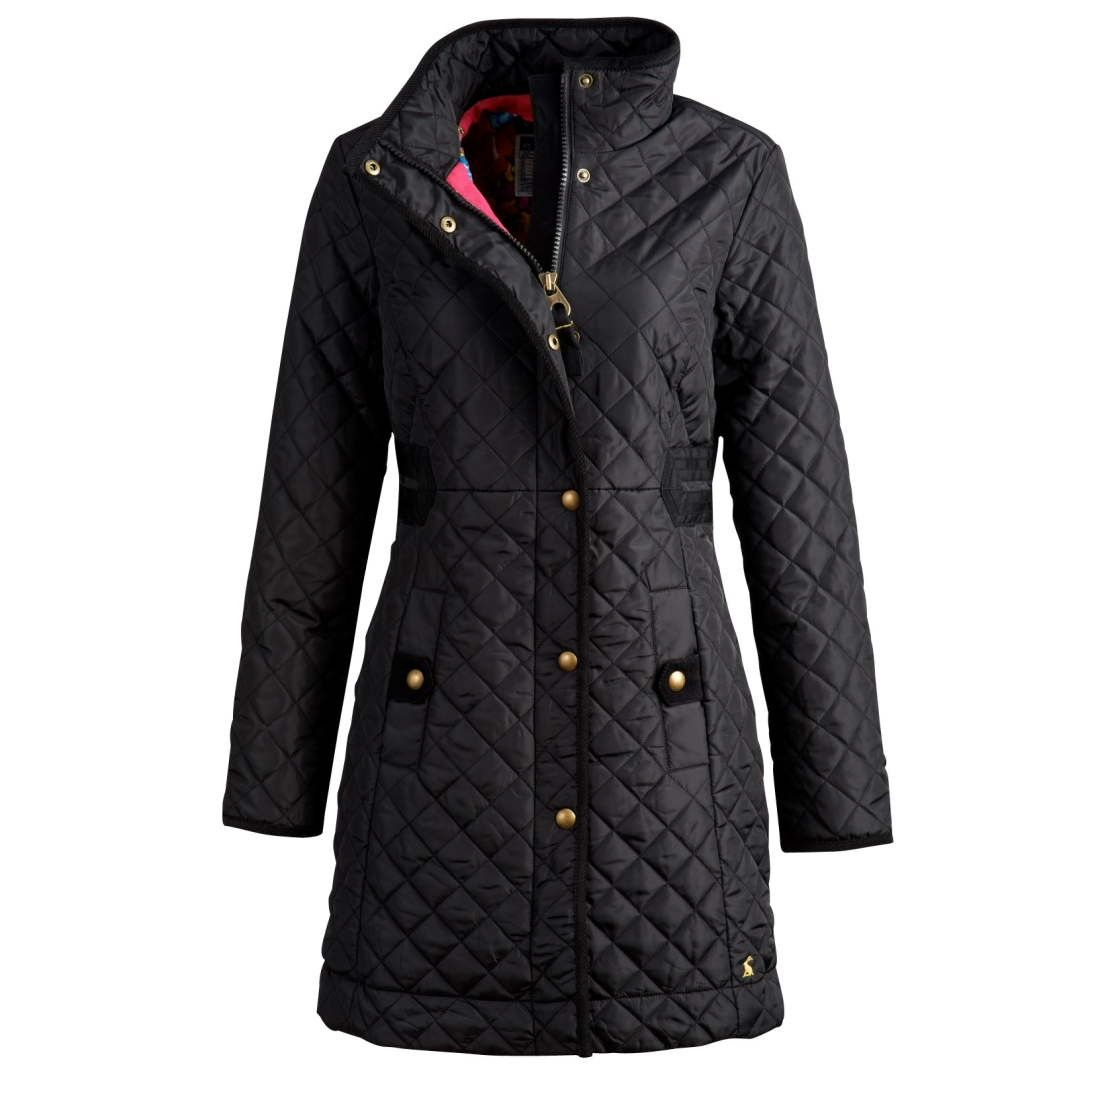 Joules+Fairhurst+Coat+Black+-+Joules+Fairhurst+Coat+Black.+The+Fairhurst+coat+is+a+lightweight+country+coat+with+a+twist.+Made+from+100%+polyester+the+coat+features+a+zip+and+popper+front+fastening,+cord+binding+detail+and+a+cotton+floral+lining.+The+coat+offers+a+3/4+length+along+with+a+laid+on+ribbon+detail+tot+he+waist,+popper+fastening+pockets+and+a+button+down+storm+flap.+Machine+washable.